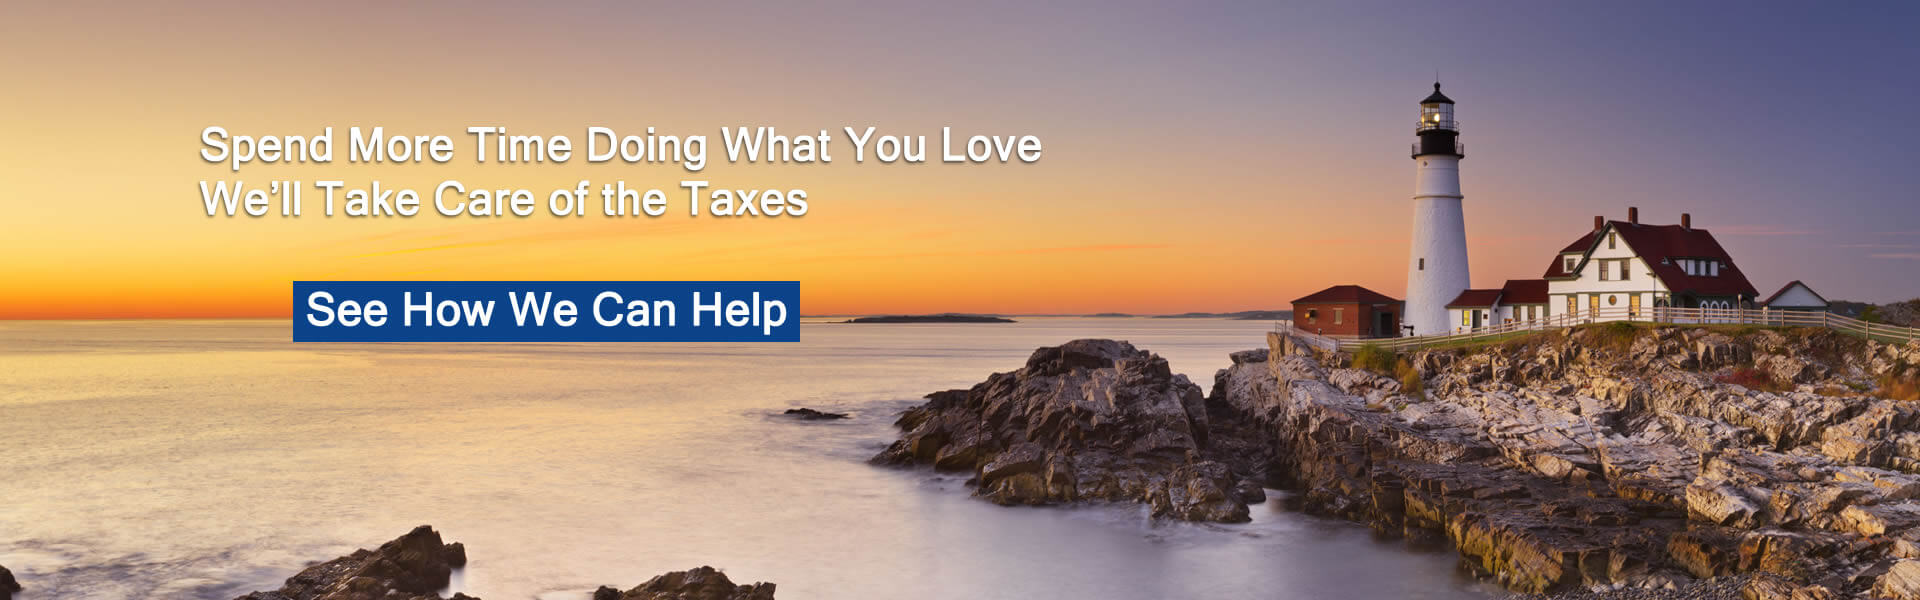 Back River Tax Accounting specializes in income tax preparation and planning for individuals and small businesses.